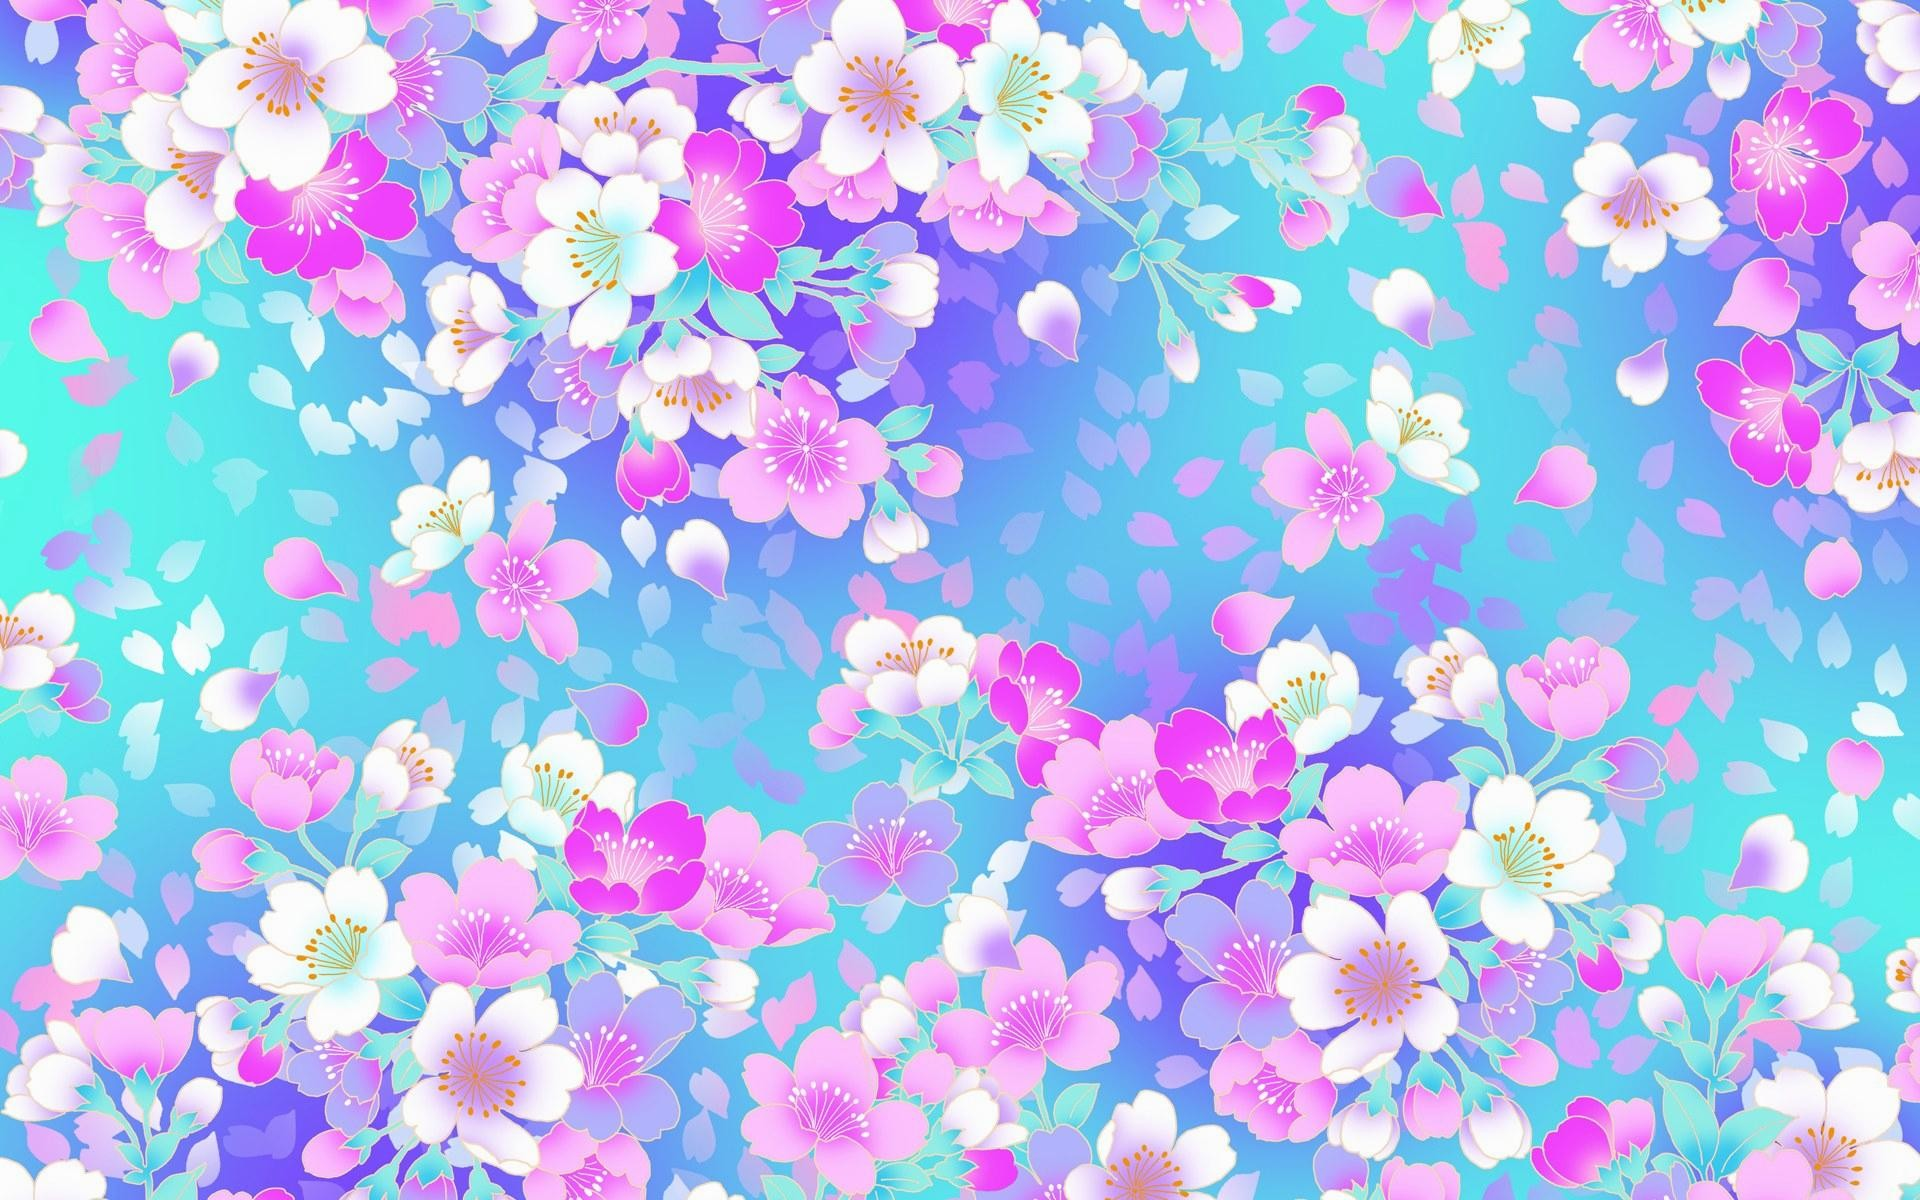 Cute Girly Wallpapers for Desktop (52+ images)